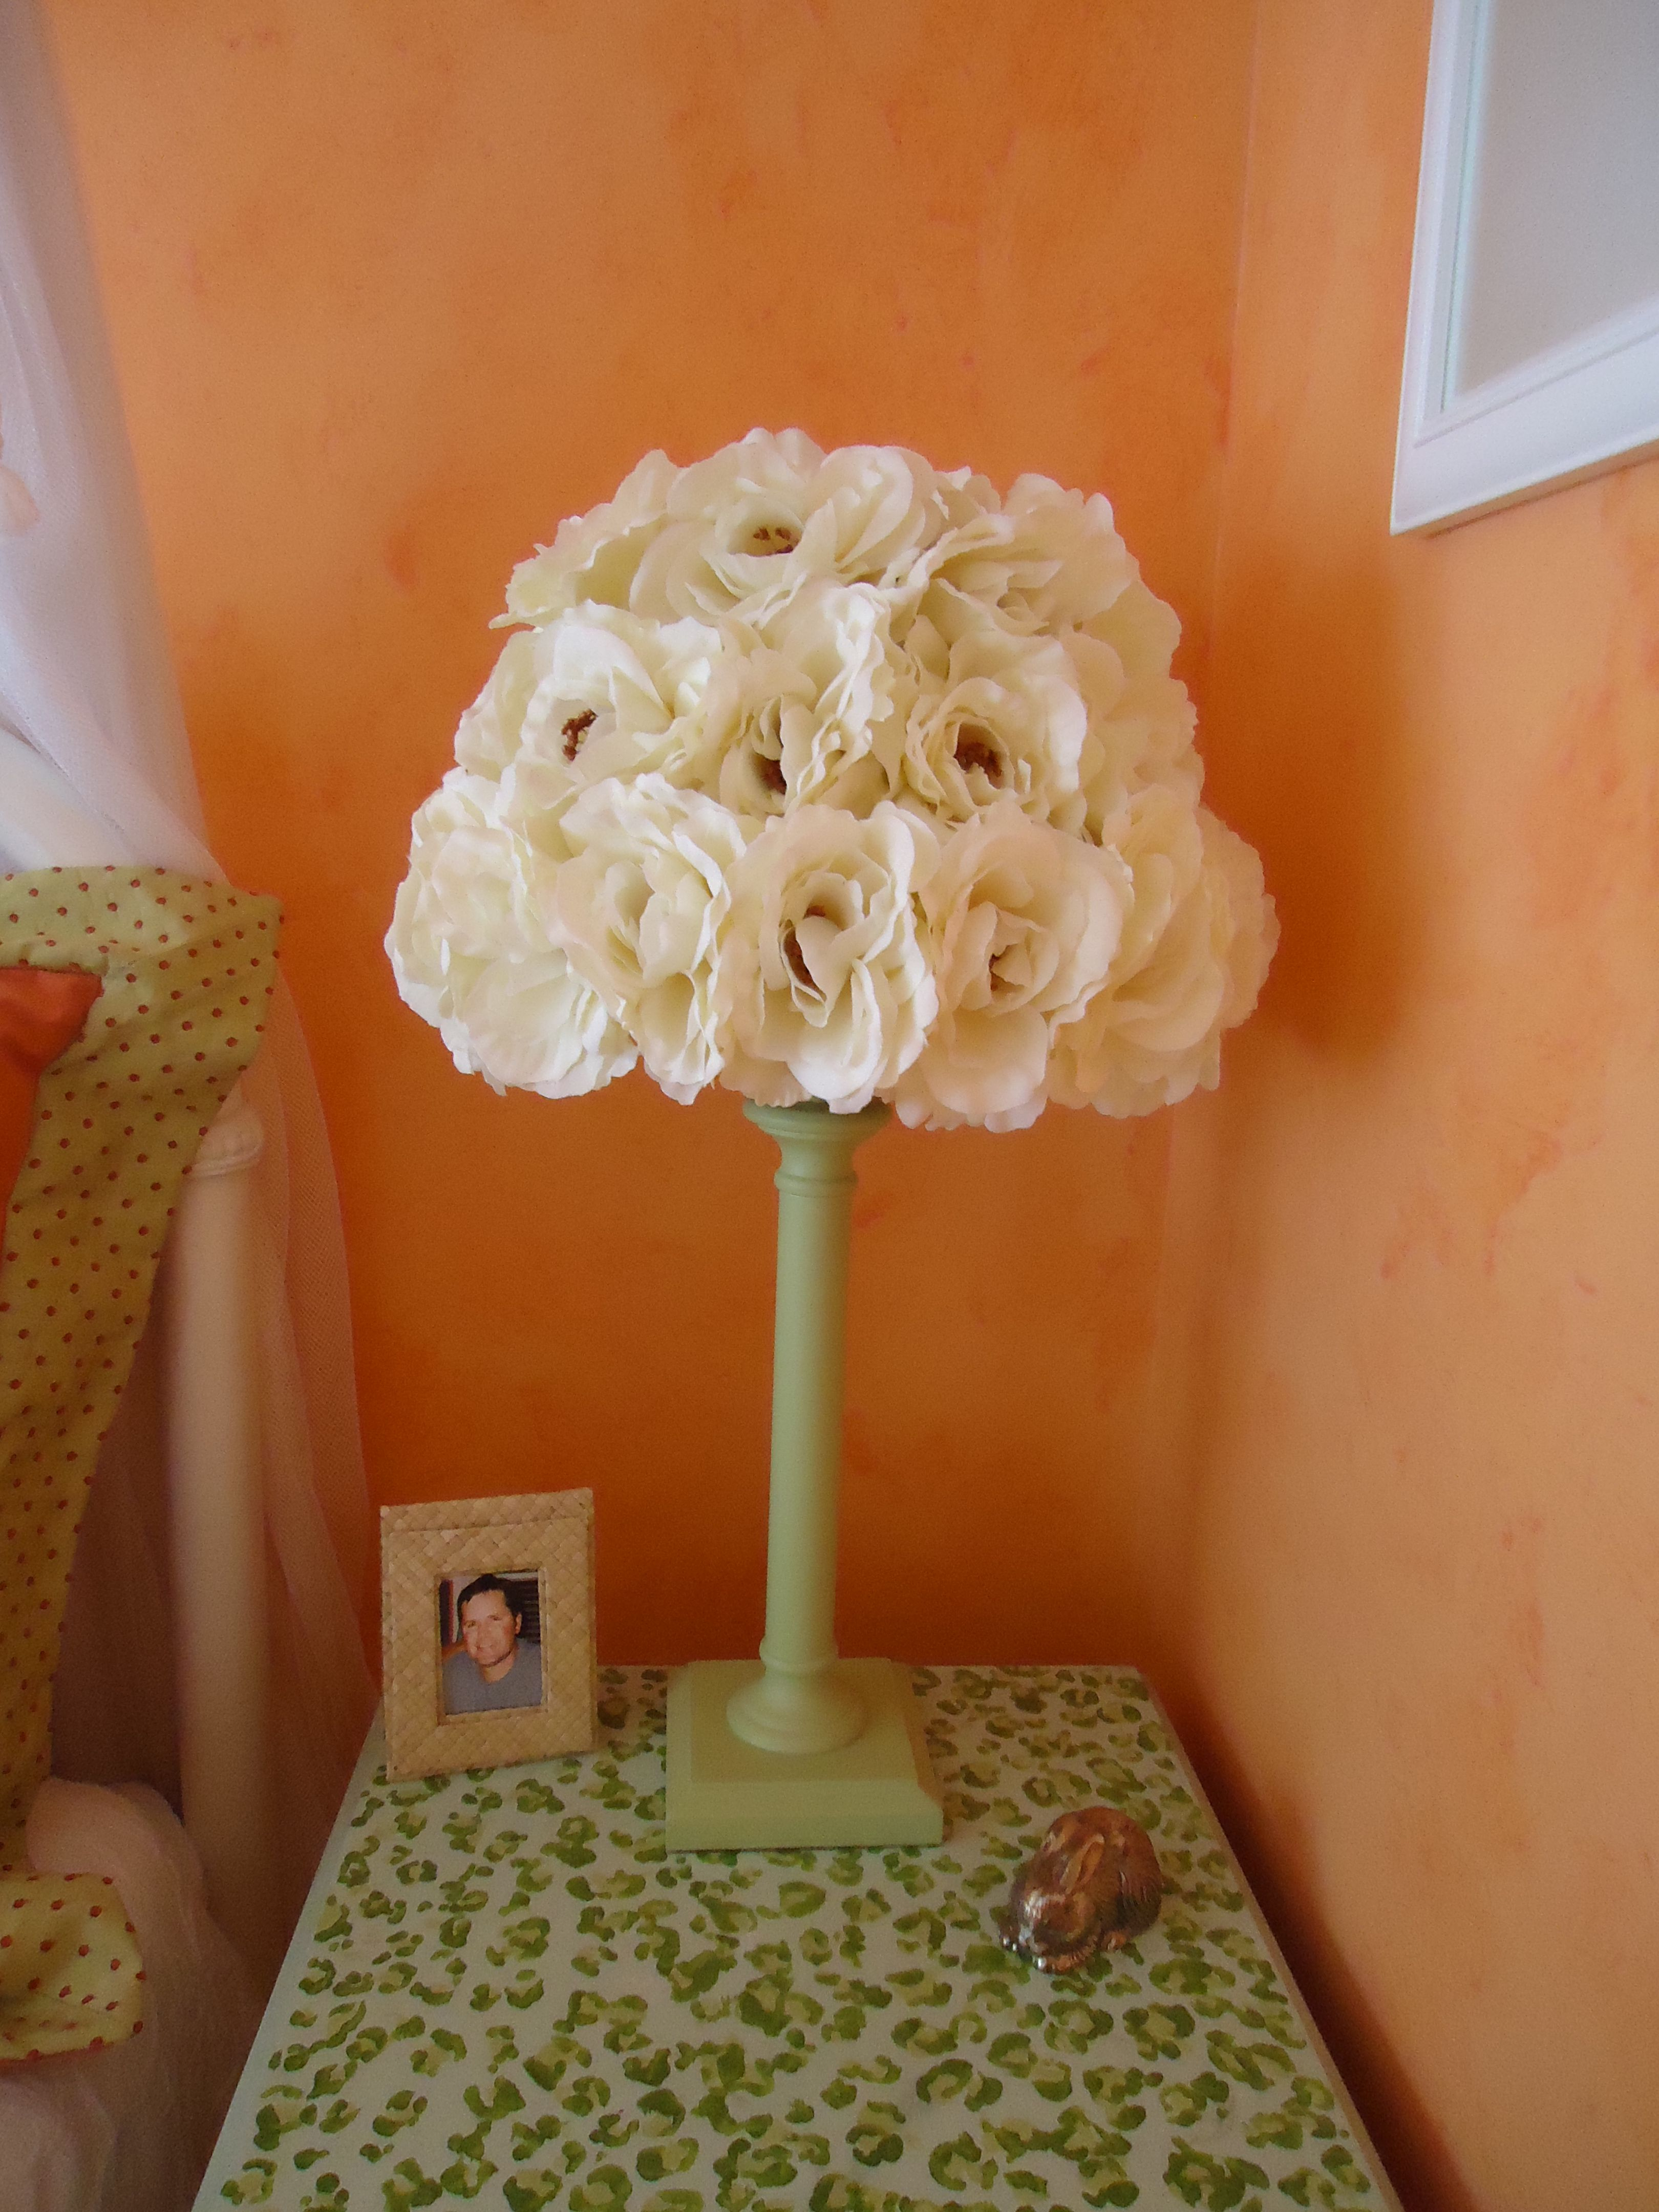 Flower lamp shade refurbished with spray paint and hot glued silk flower lamp shade refurbished with spray paint and hot glued silk flowers cute nice way to cover ugly shade mightylinksfo